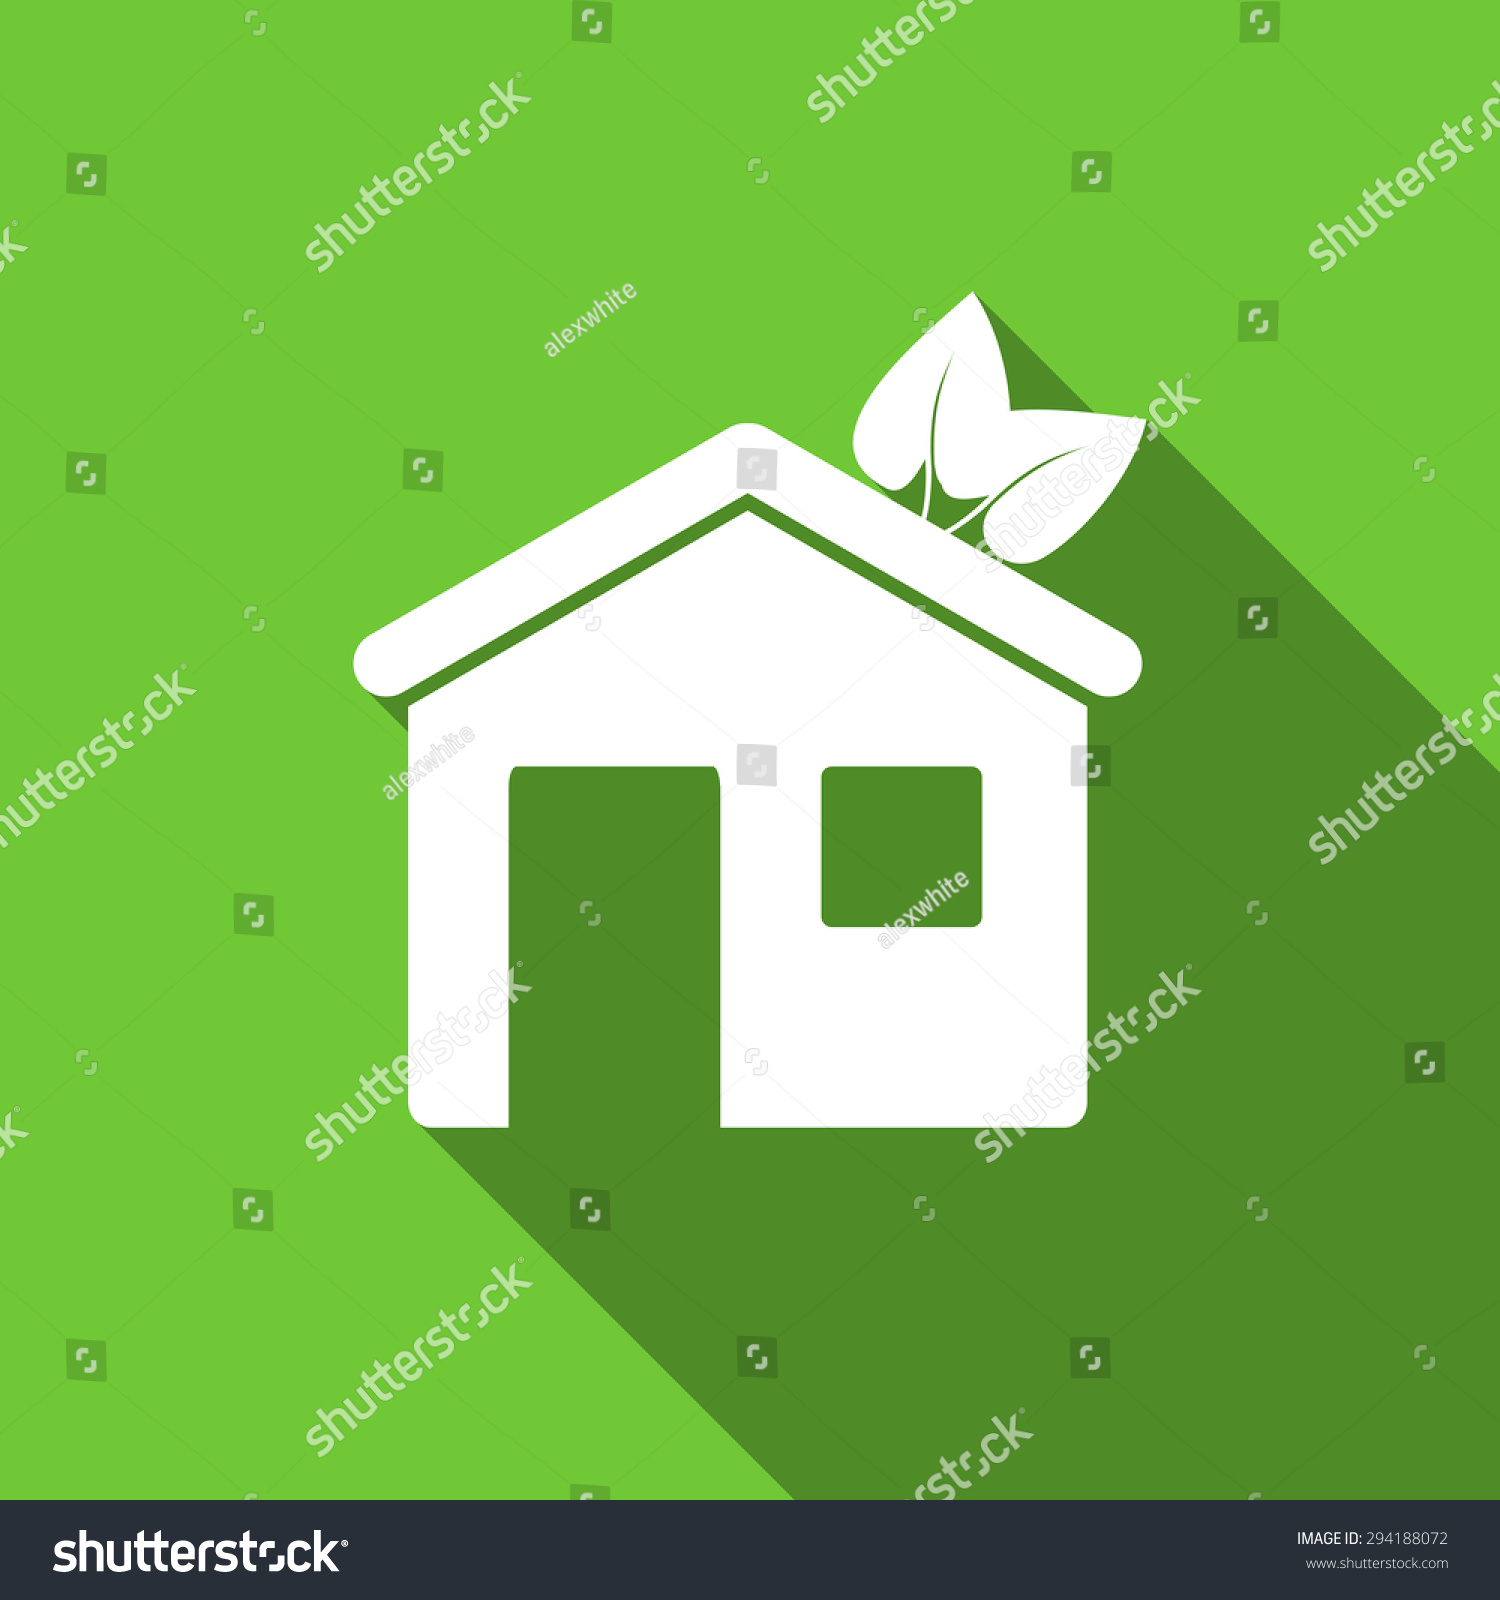 House Design Web App Home Photo Style